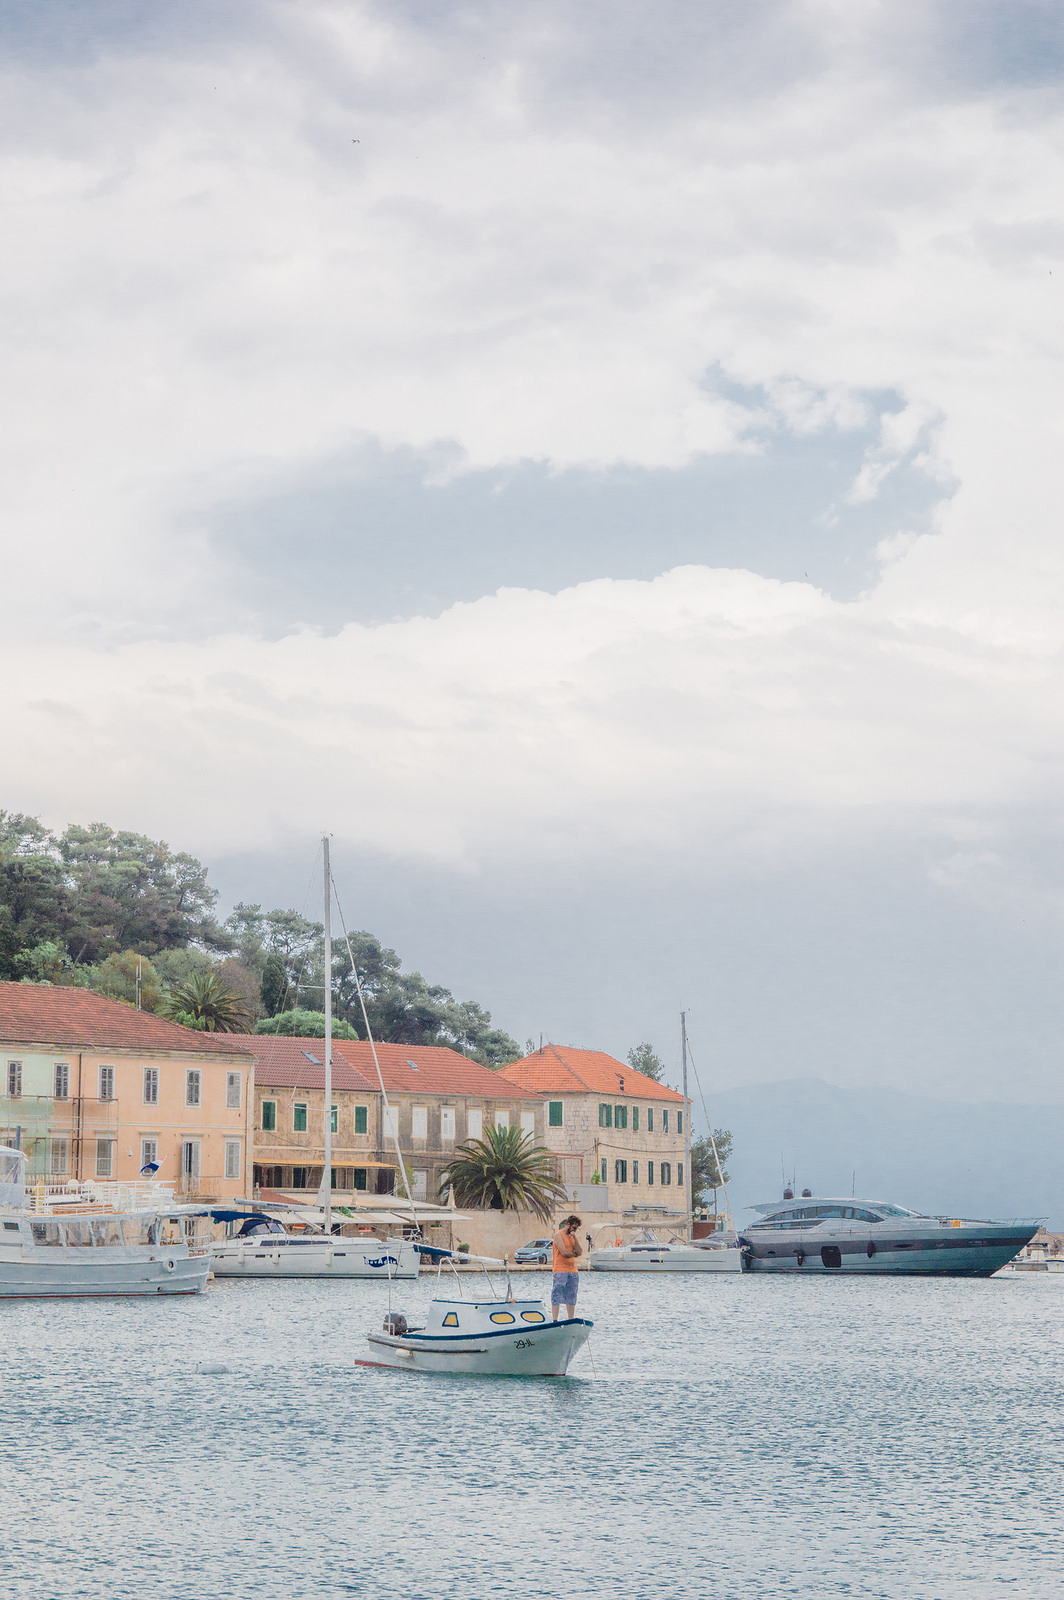 Photos of the Dalmatian Islands and their historic villages